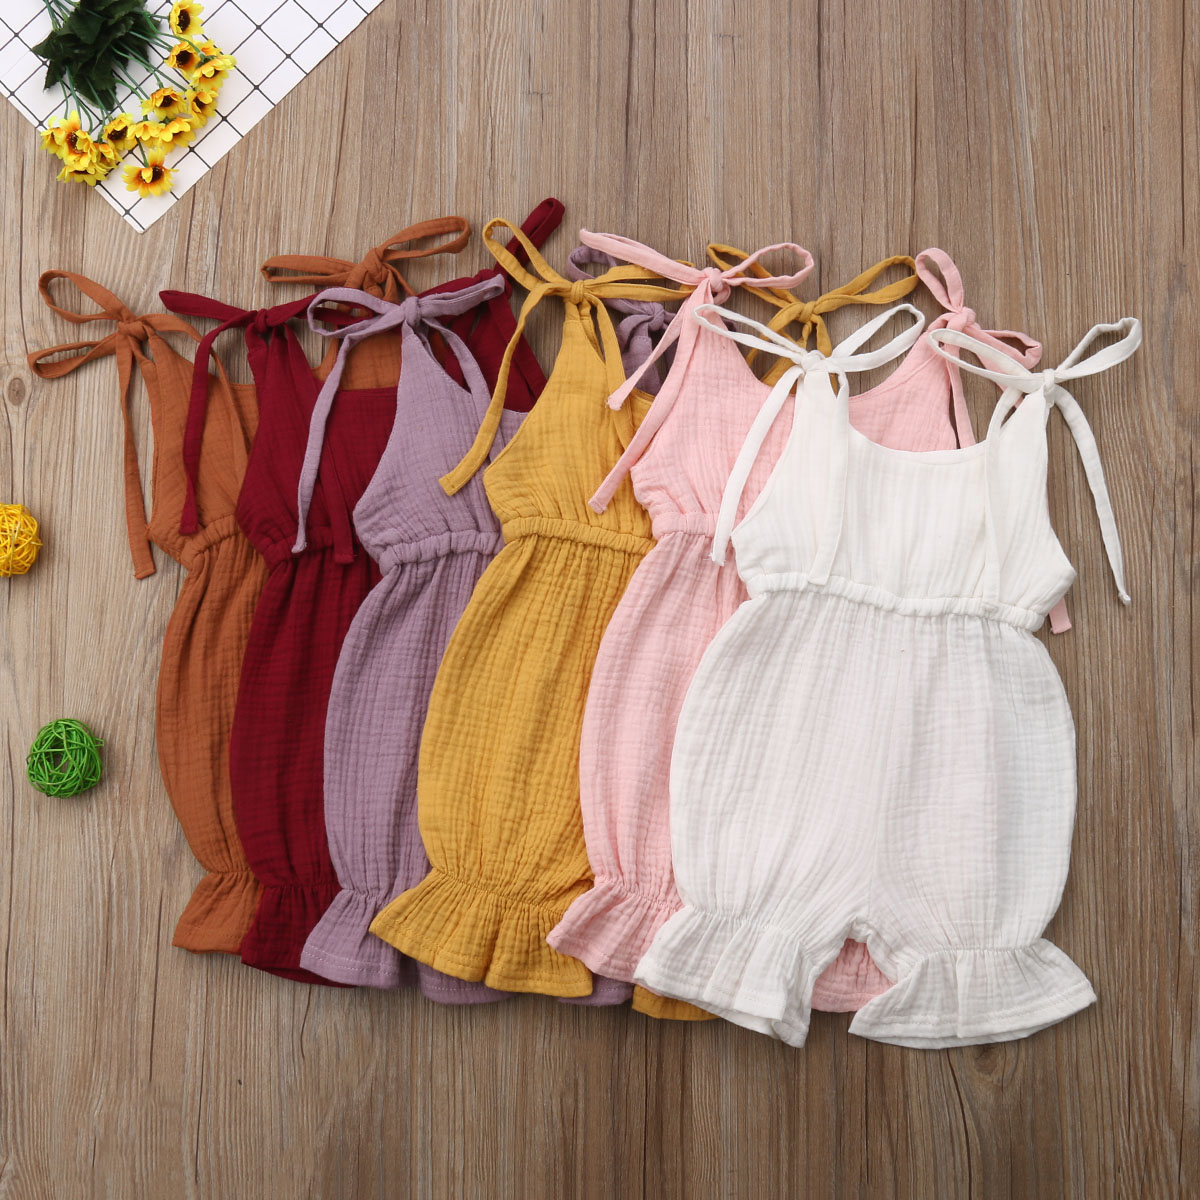 One Piece Loose Solid   Romper   For Girls Newborn Toddler Baby Summer Strap   Romper   Sleeveless Jumpsuit Outfit Sunsuit